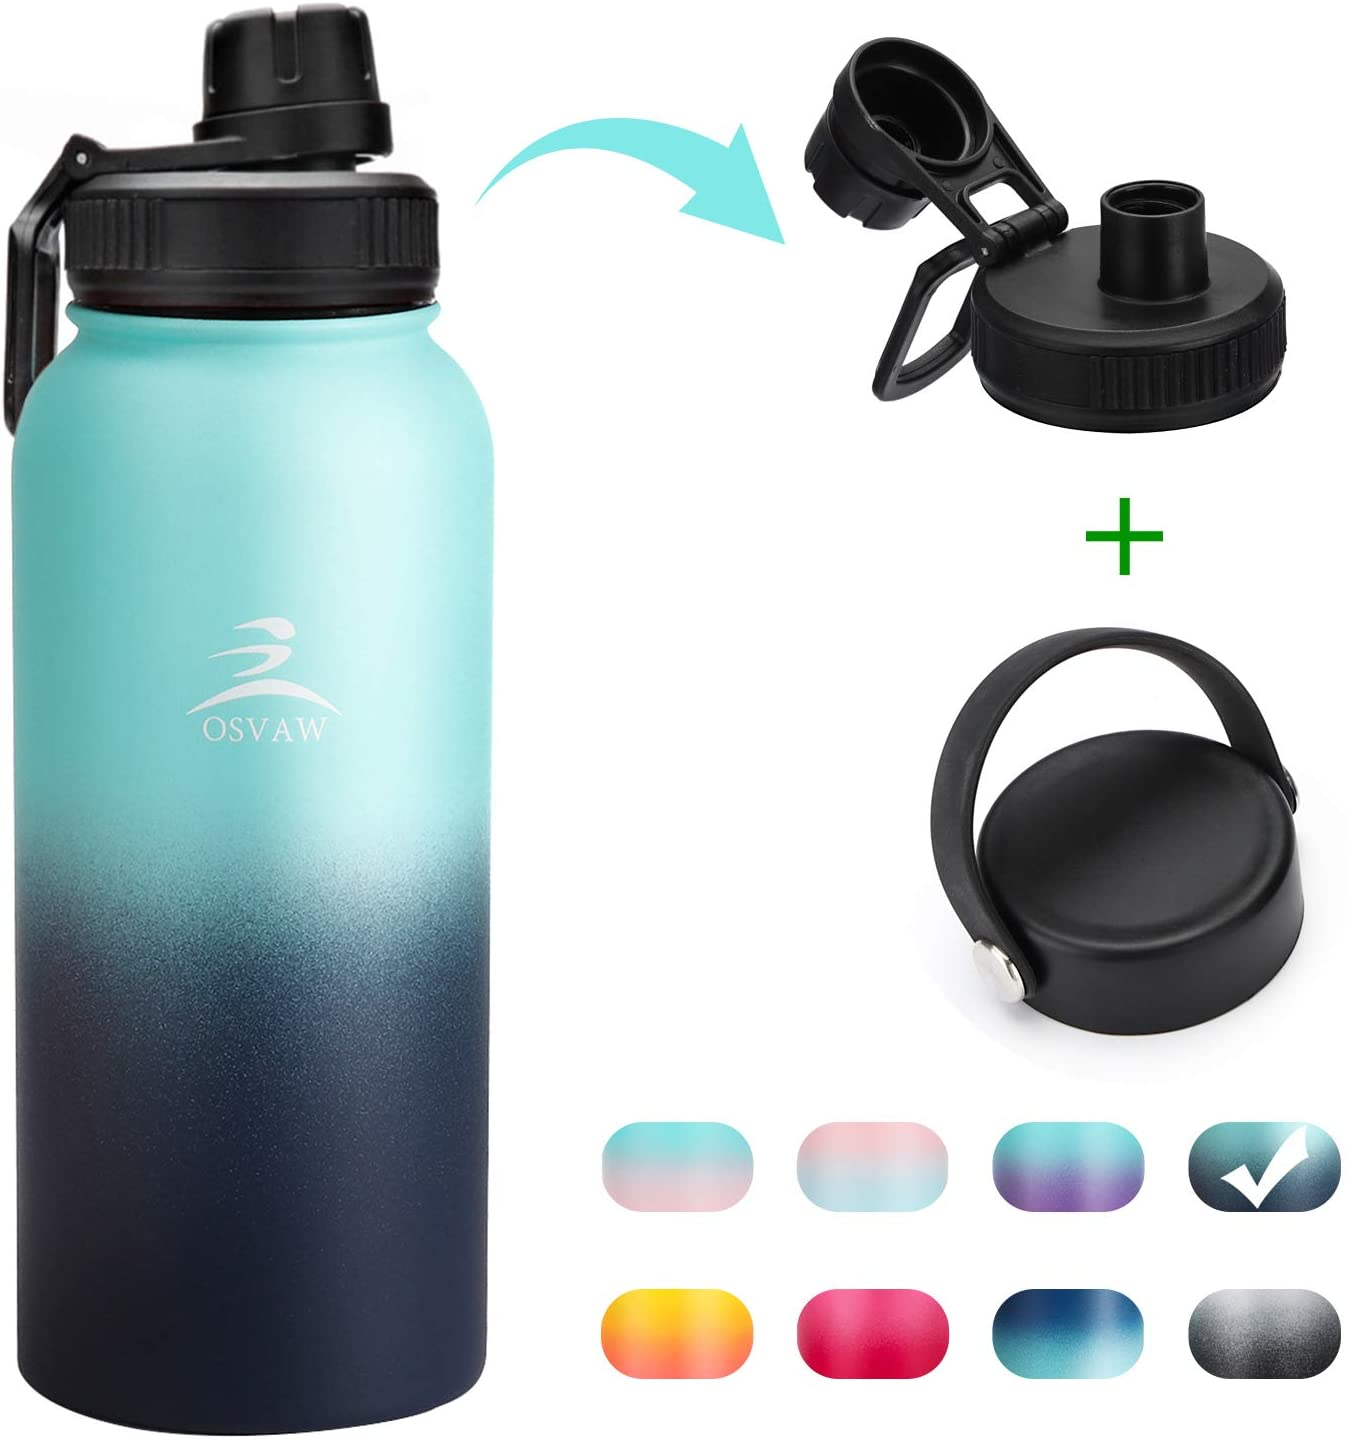 OSVAW Sports Insulated Water Bottle with Spout Lid and Handle Lid, Stainless Steel Double Wall Vacuum Insulated, Sweat Proof Design Keeps Liquids Hot or Cold